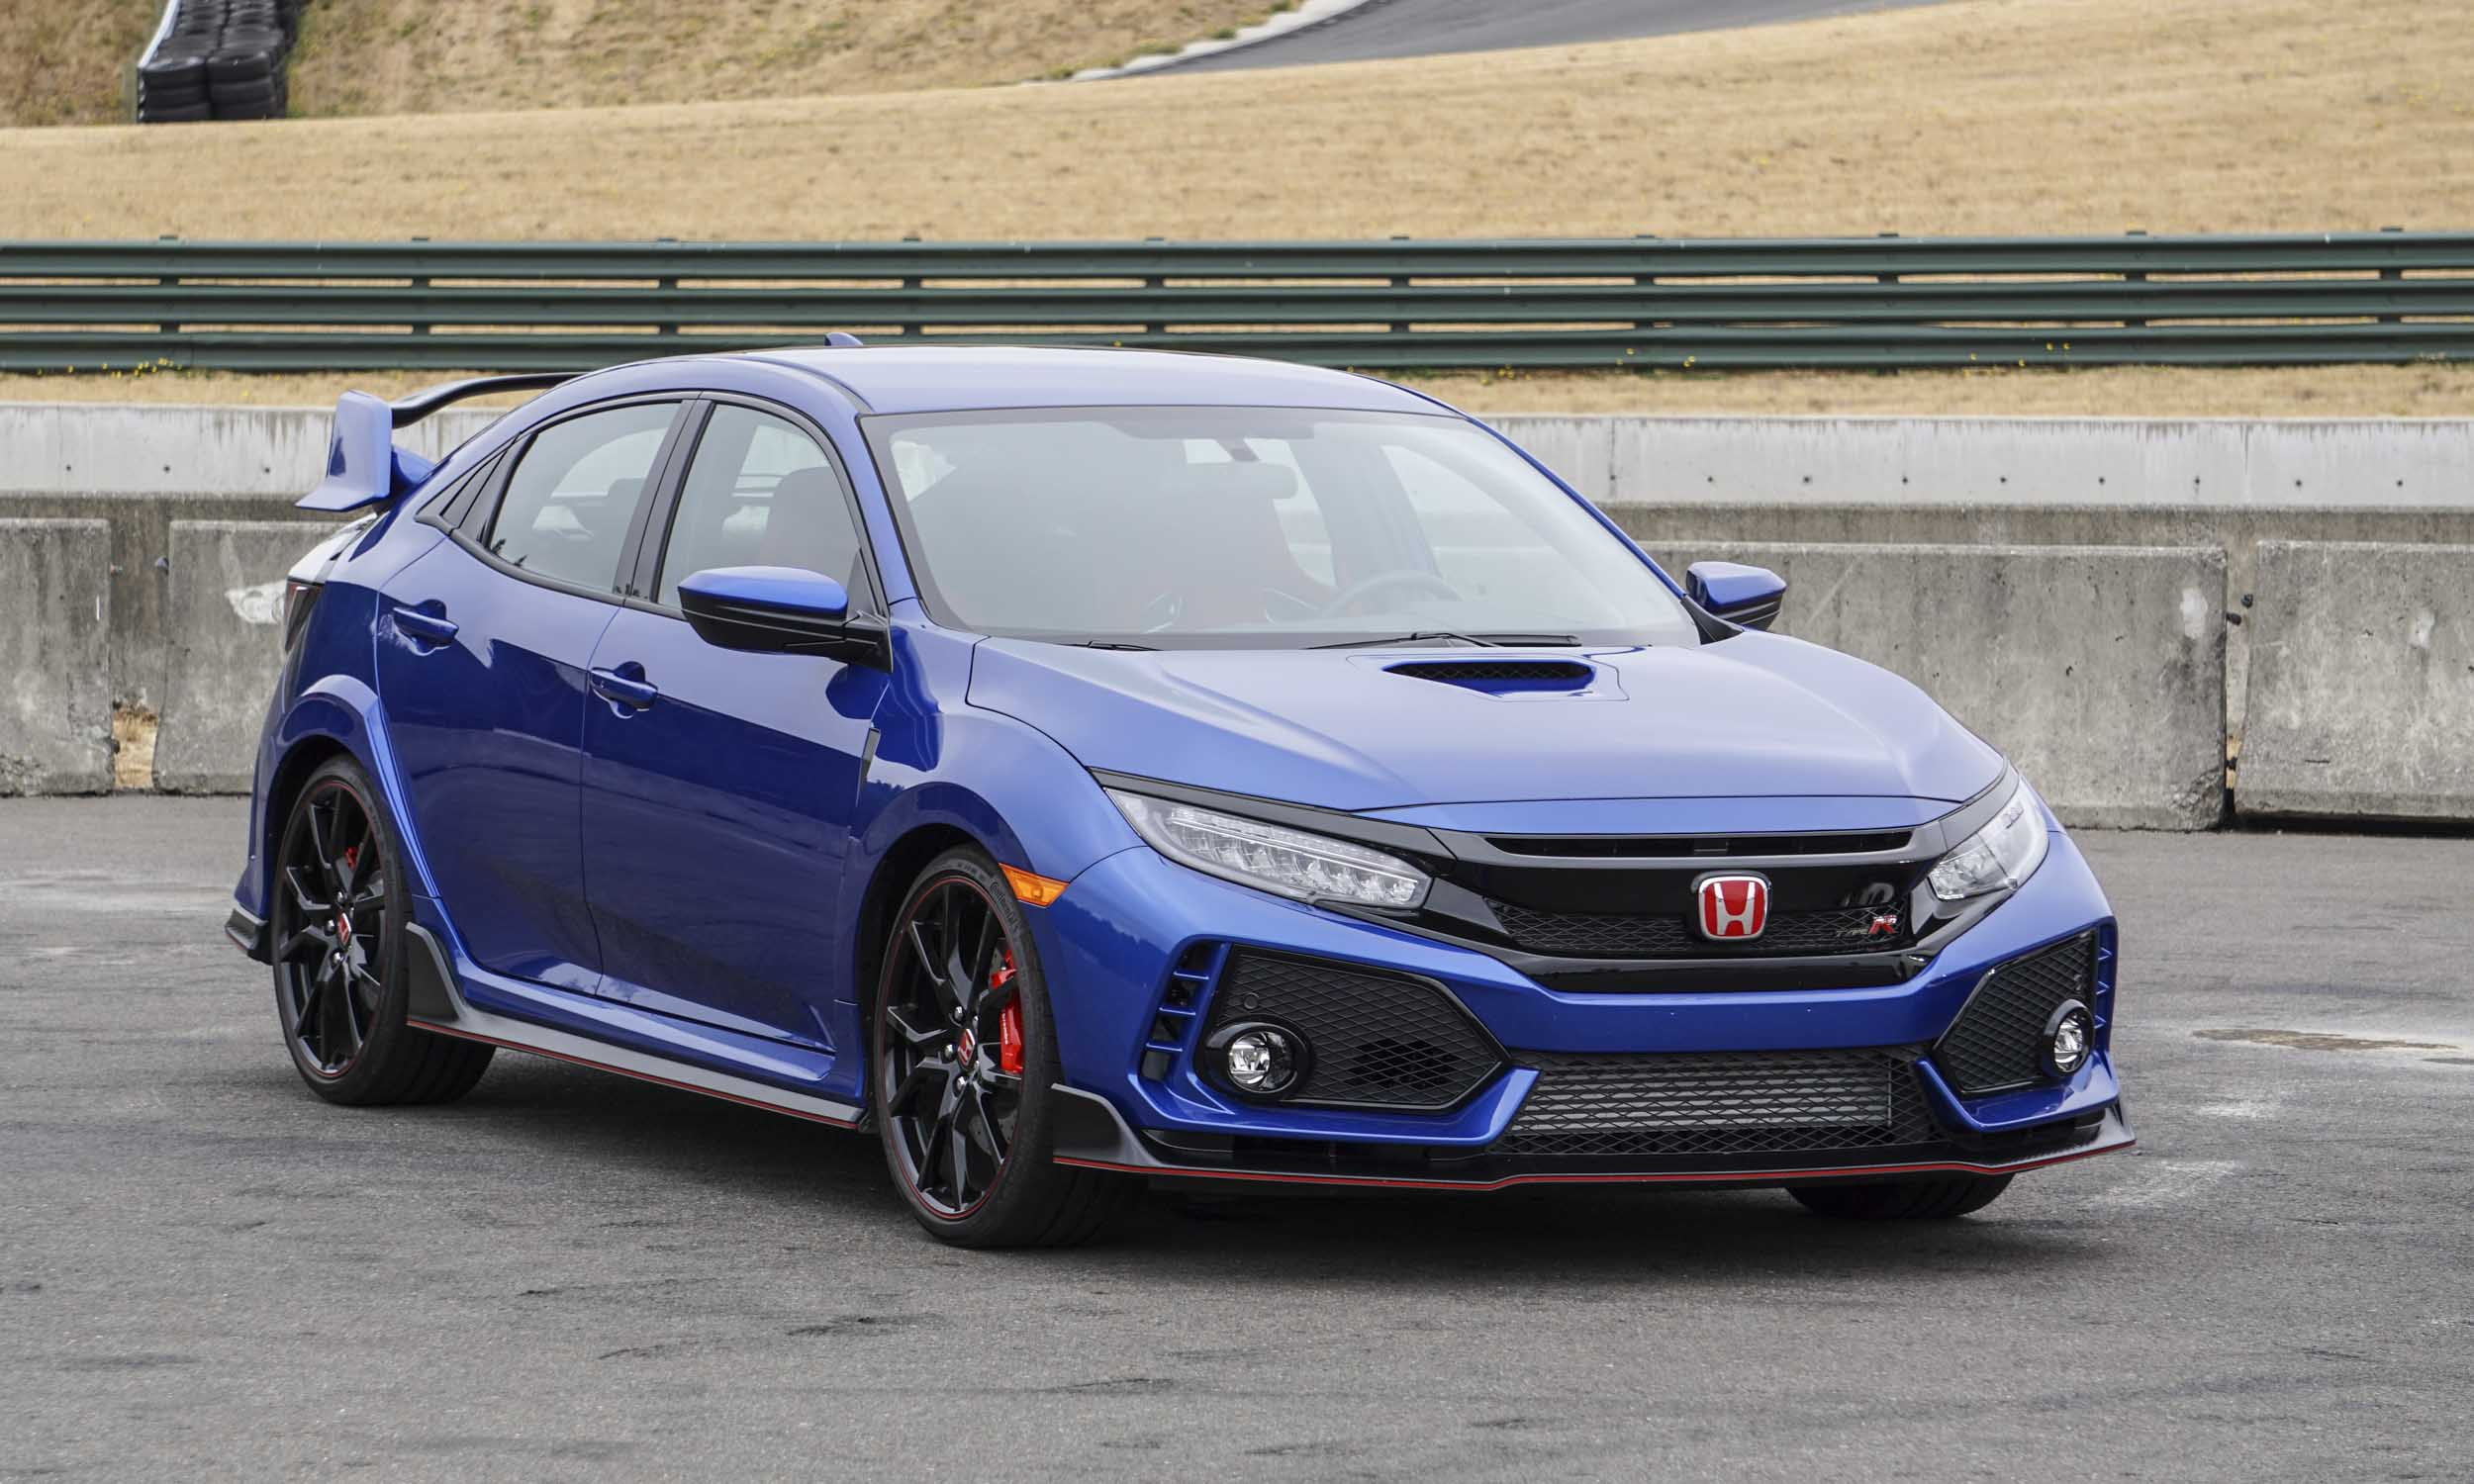 2017 Honda Civic Type R: First Drive Review - » AutoNXT